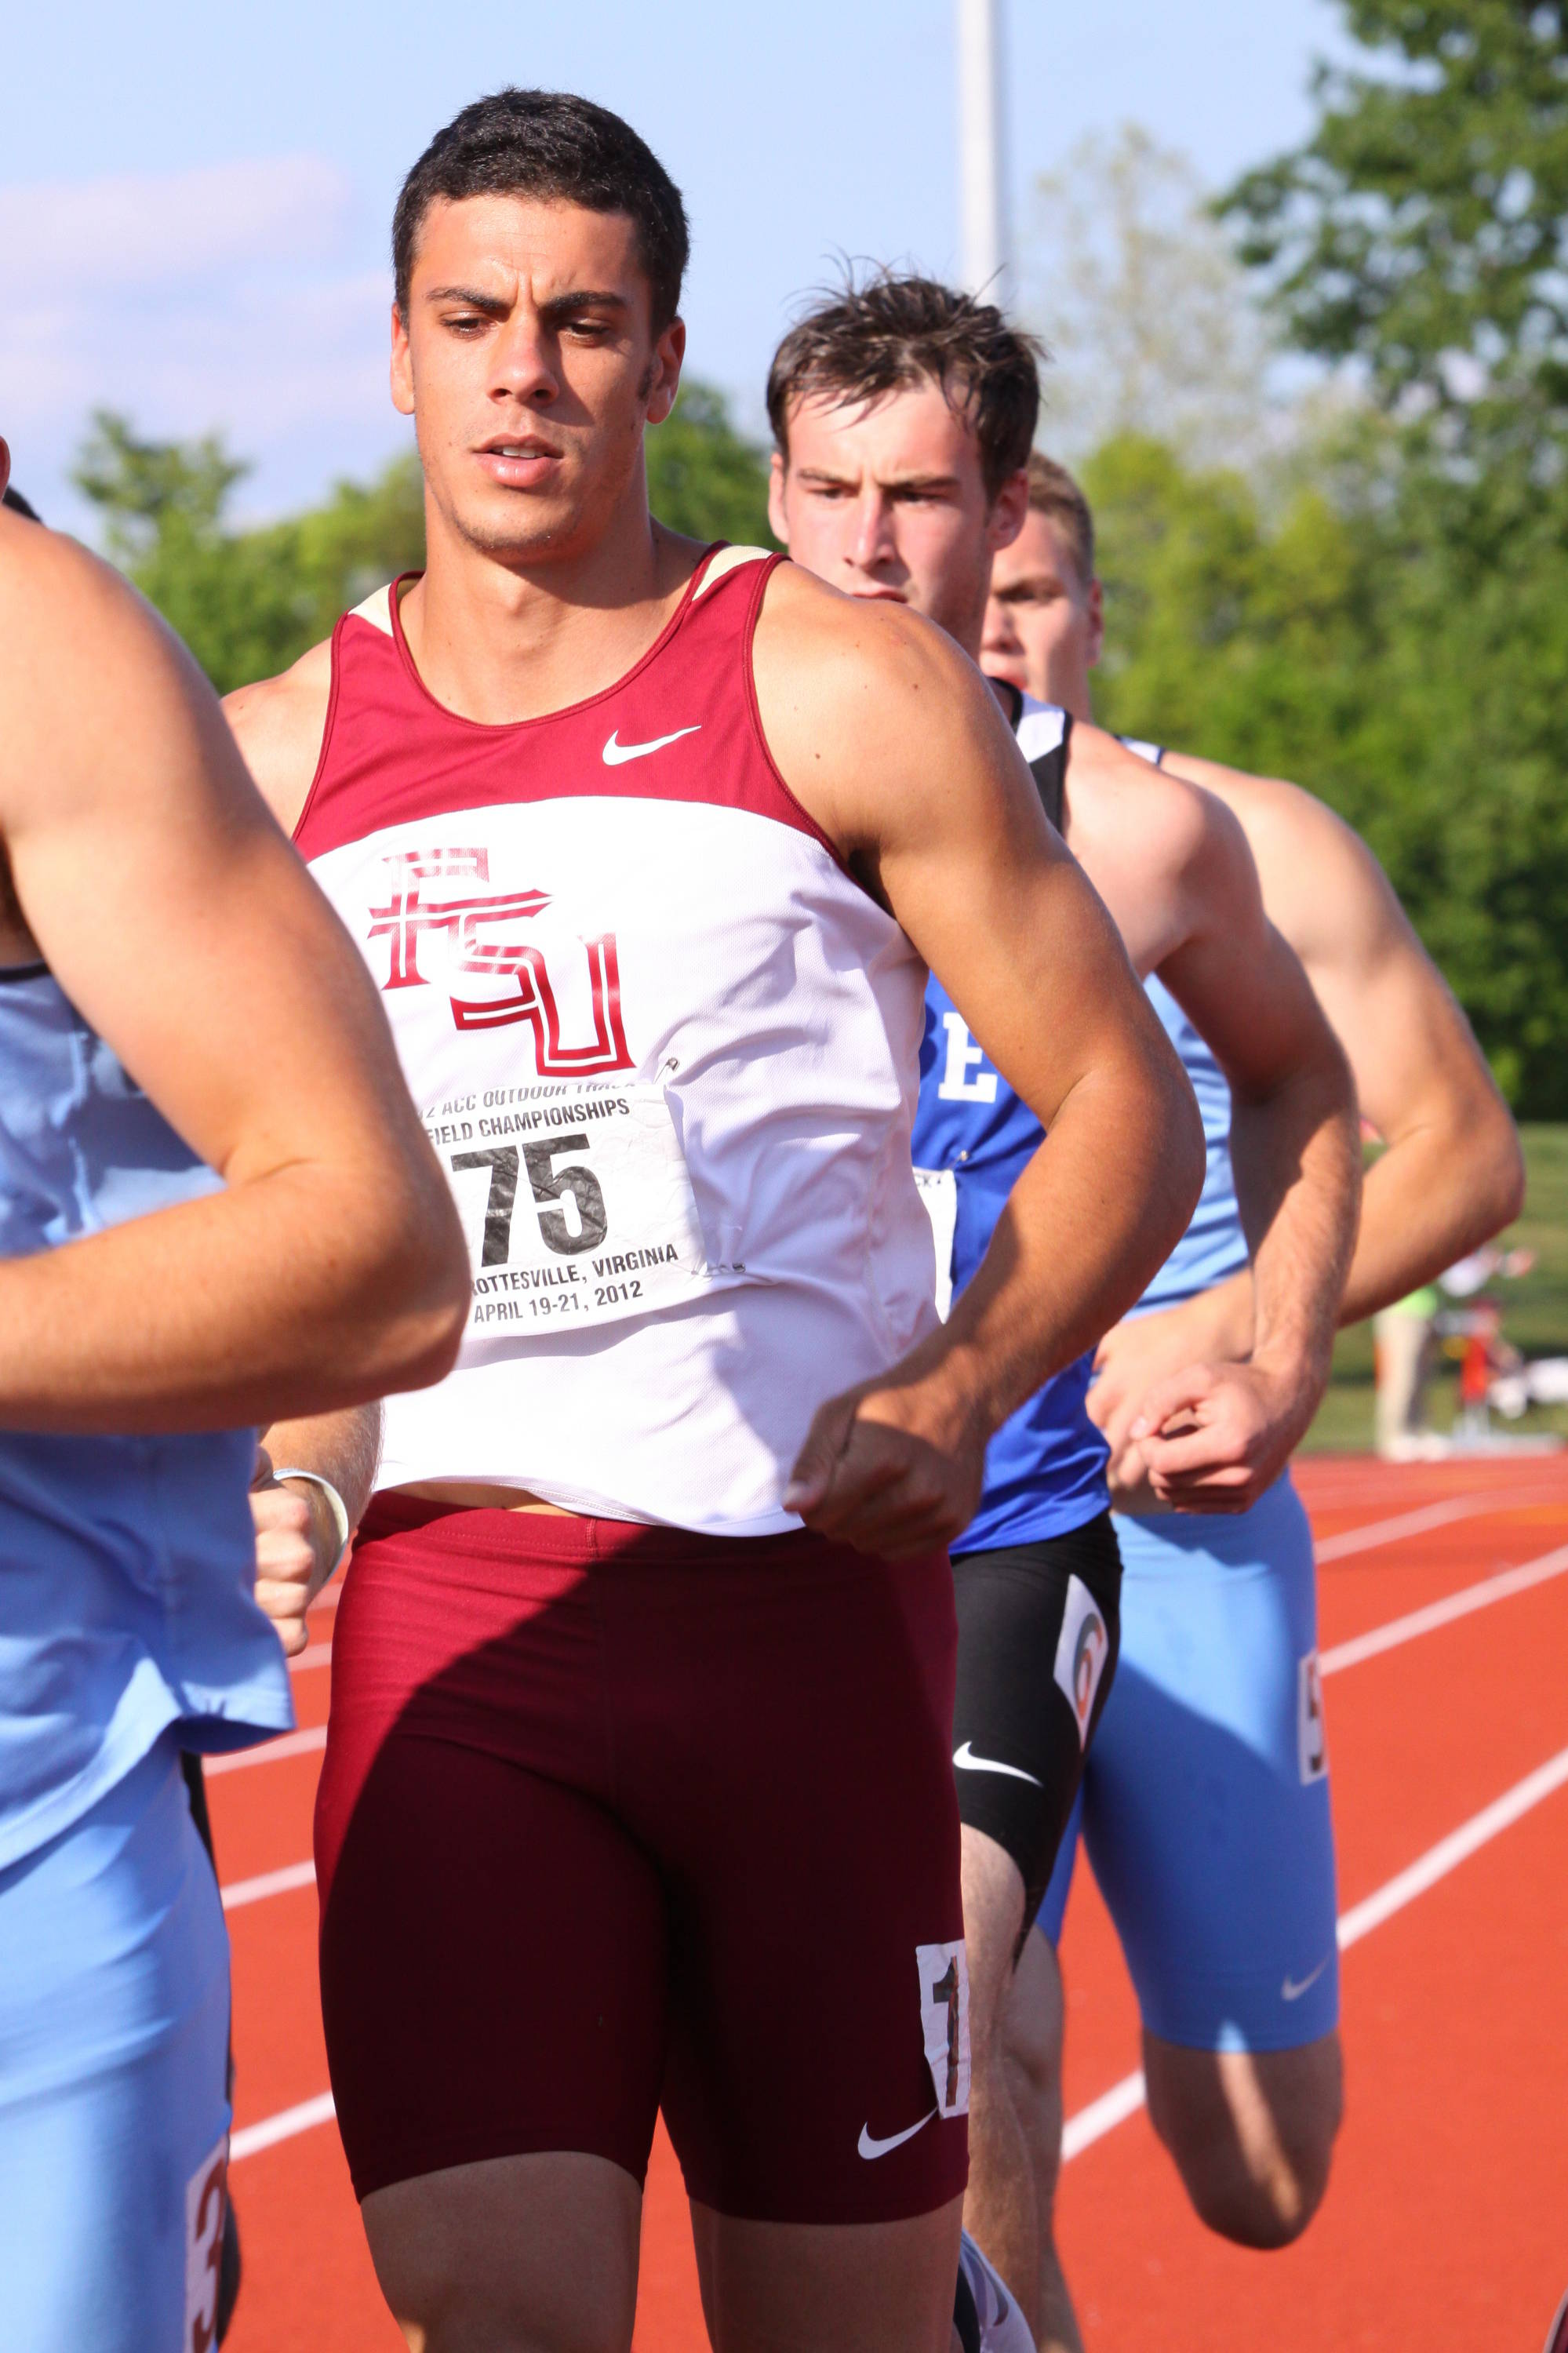 With a comfortable 517-point lead, Barroilhet turned his attention to the 8,000-point standard in the 1500. Needing only 559 to get there, he cranked out a 4:49.19, good for 624 points. Barroilhet's 8,065-point total shattered the 20-year-old ACC mark.